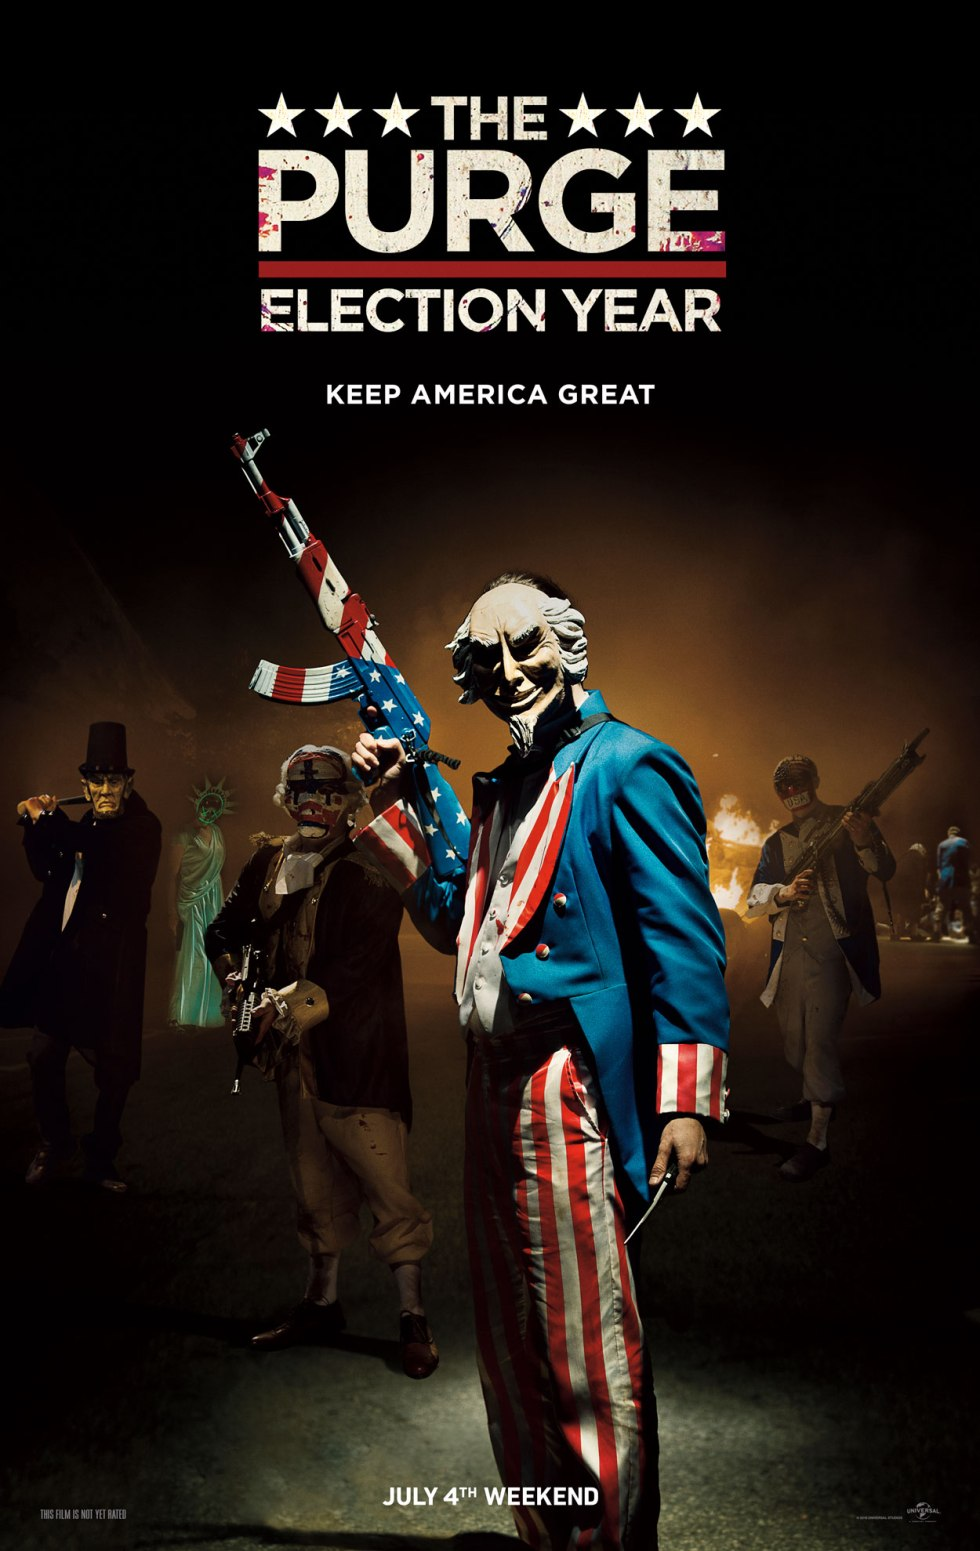 The-Purge-Election-Year-poster-2